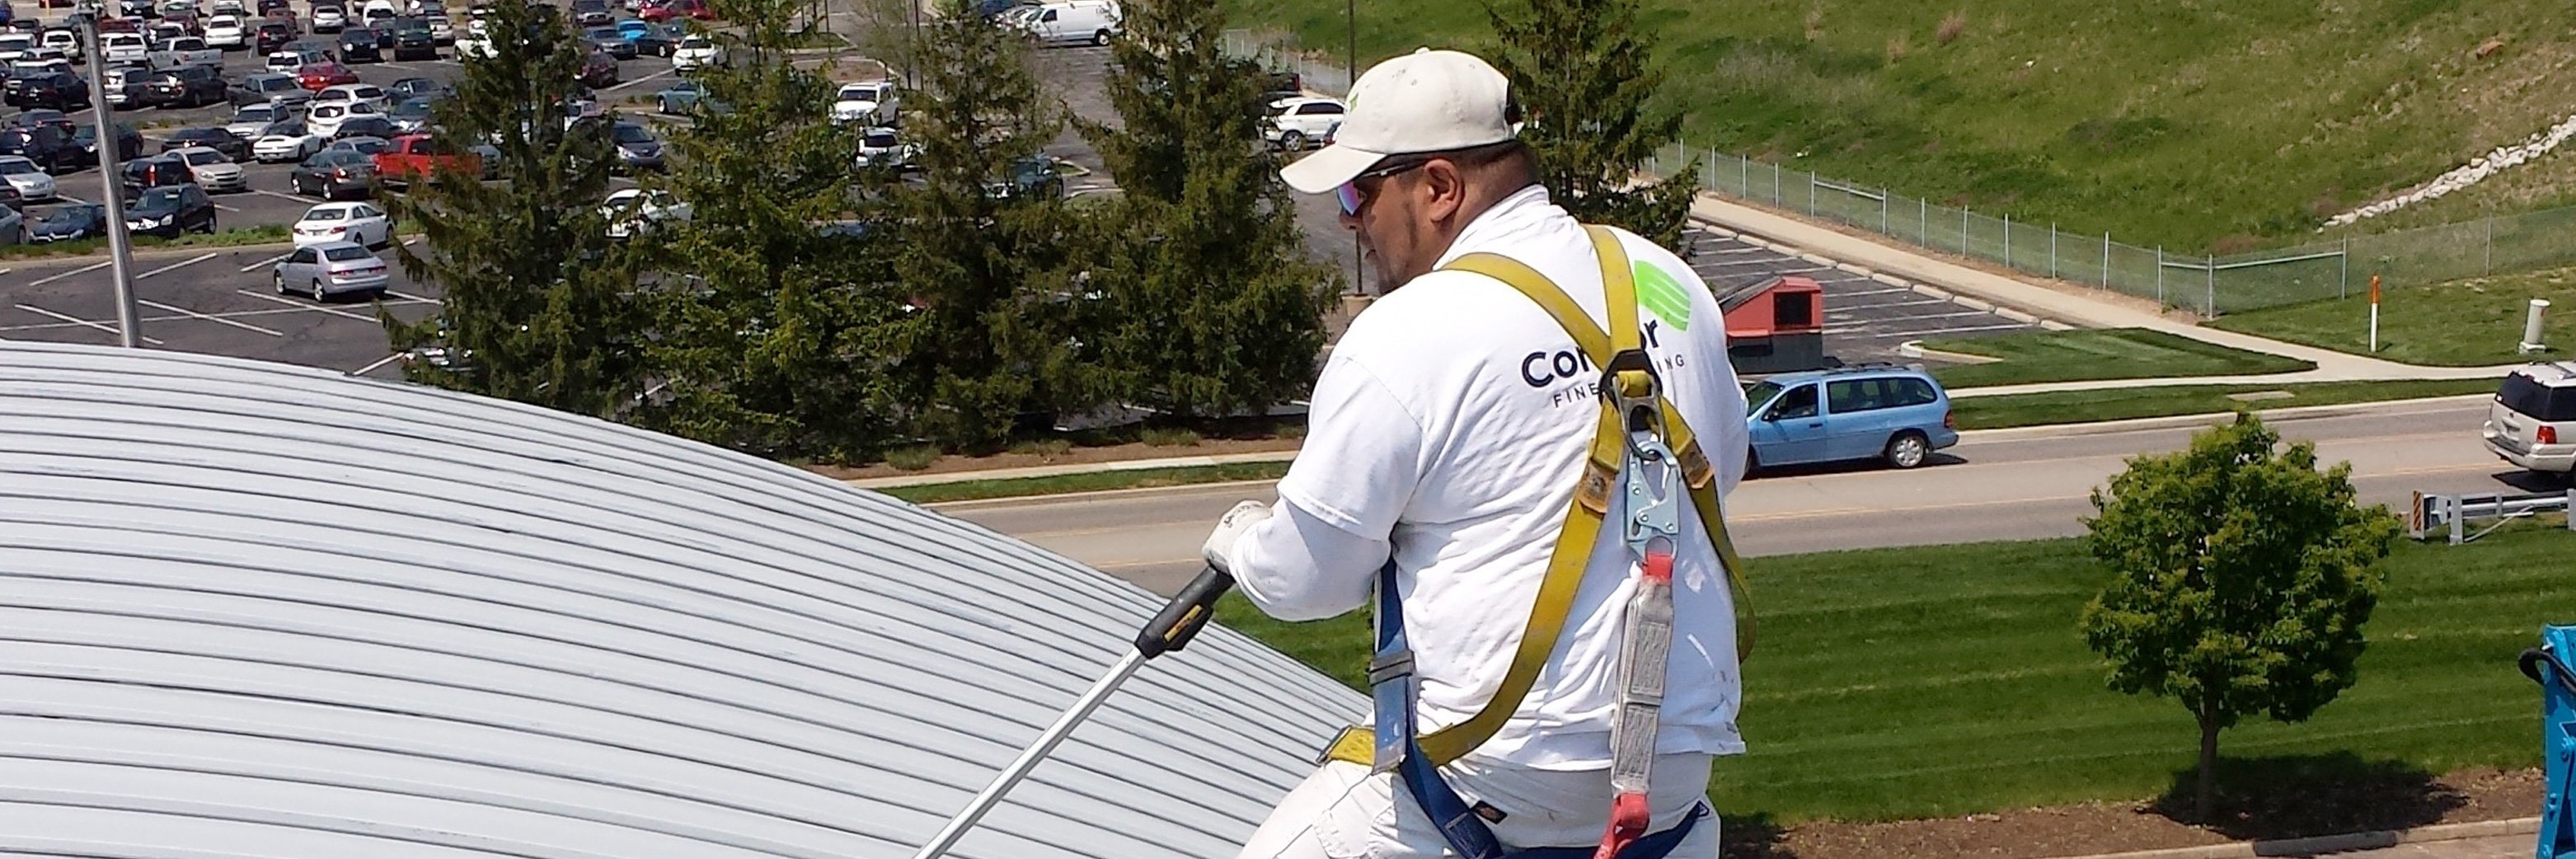 Applying epoxy mastic primer to commercial rooftop in Indianapolis, Indiana.